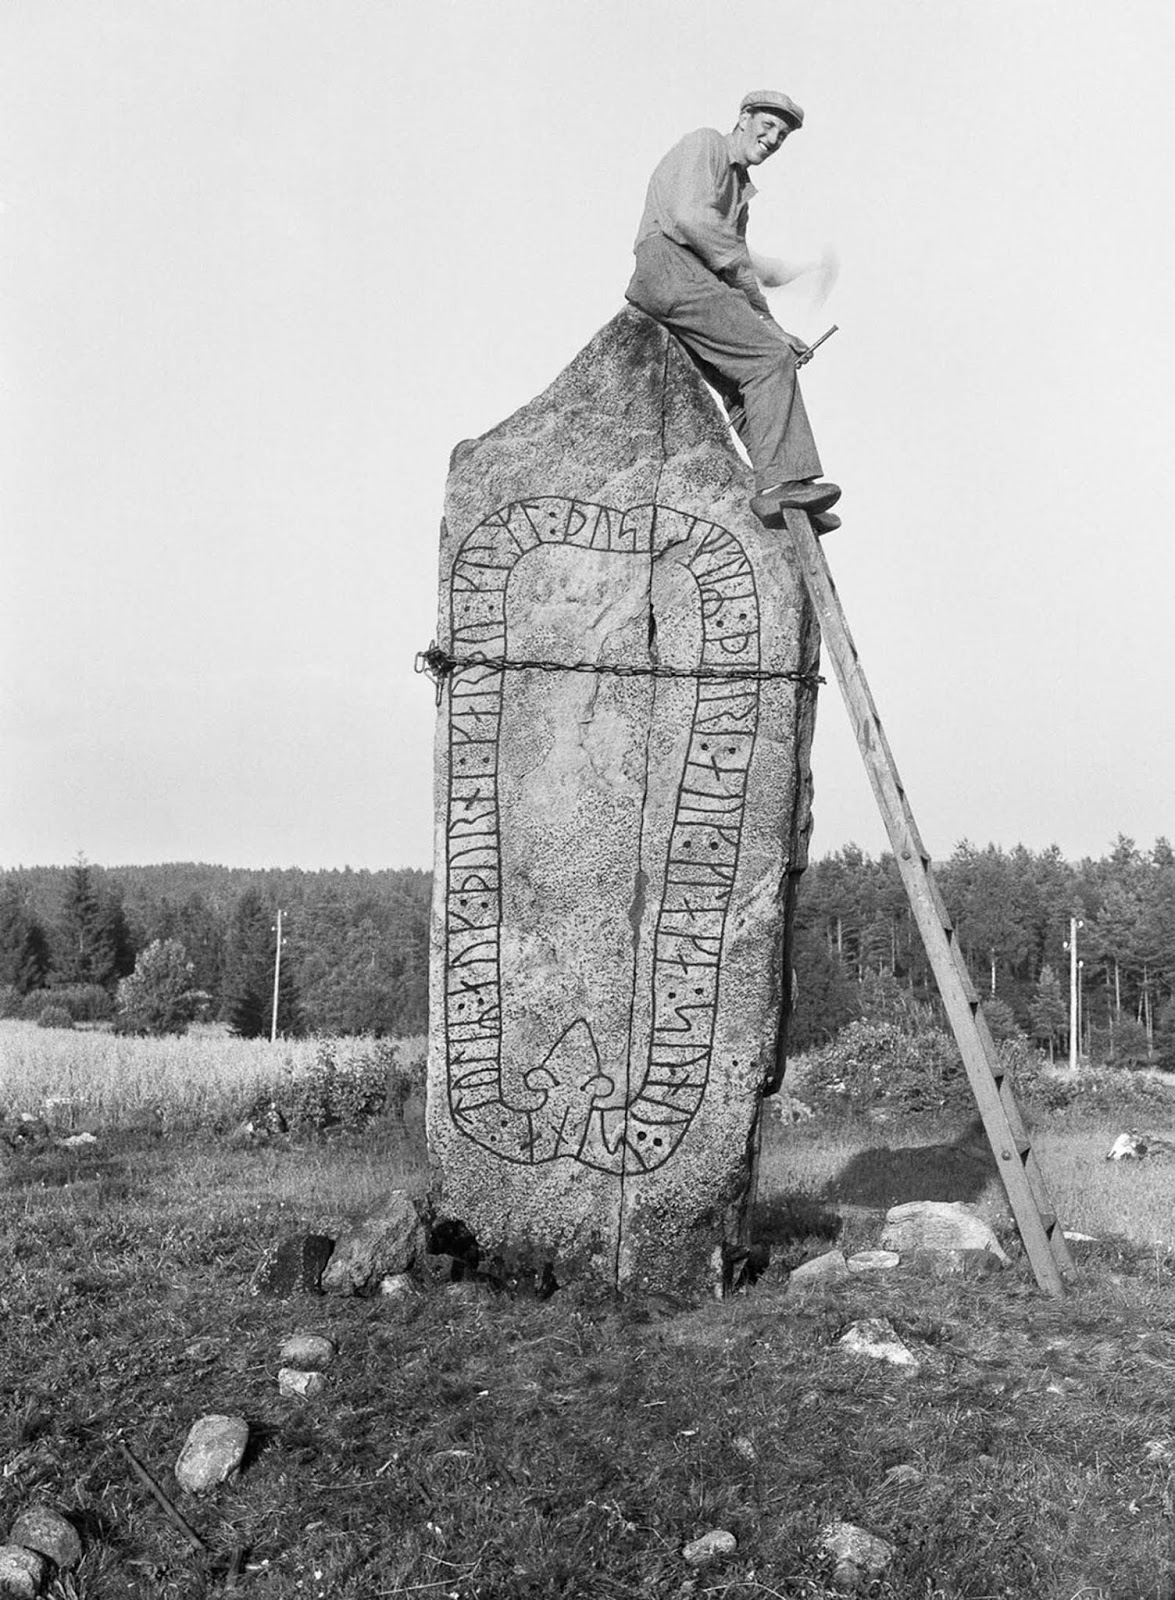 A man works on restoring a cracked runestone at Svedjorna in Södra Ving. The inscription reads,